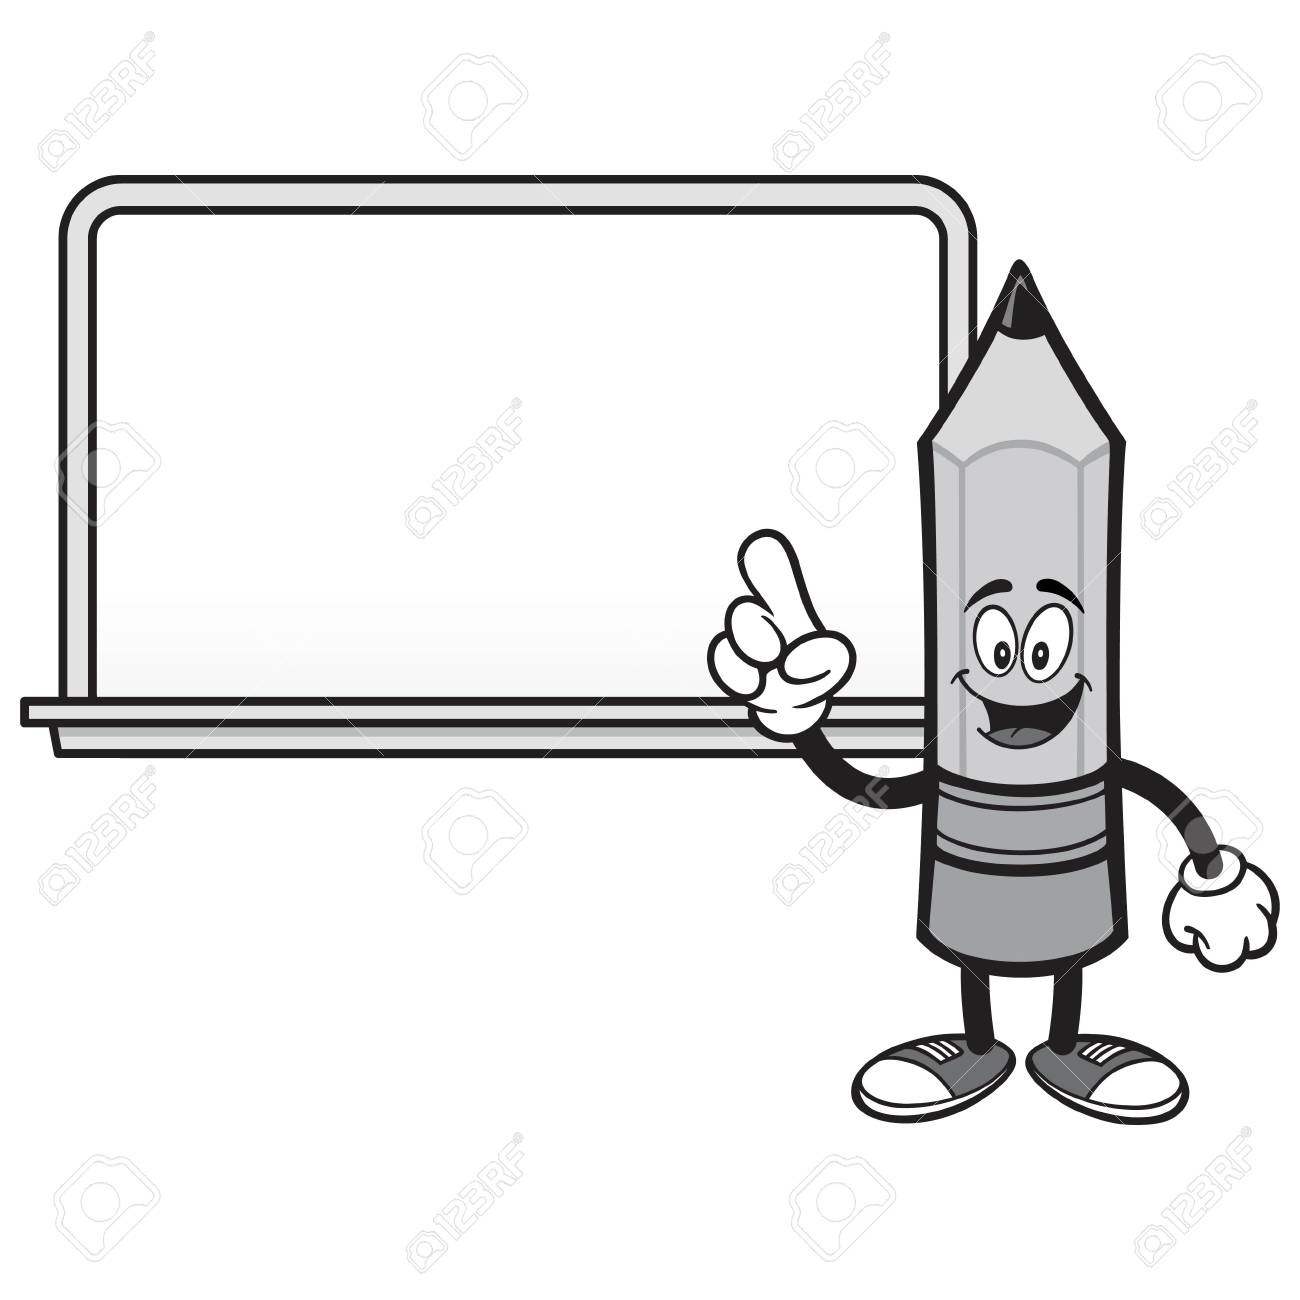 black and white school pencil with a whiteboard a vector cartoon royalty free cliparts vectors and stock illustration image 110275329 black and white school pencil with a whiteboard a vector cartoon